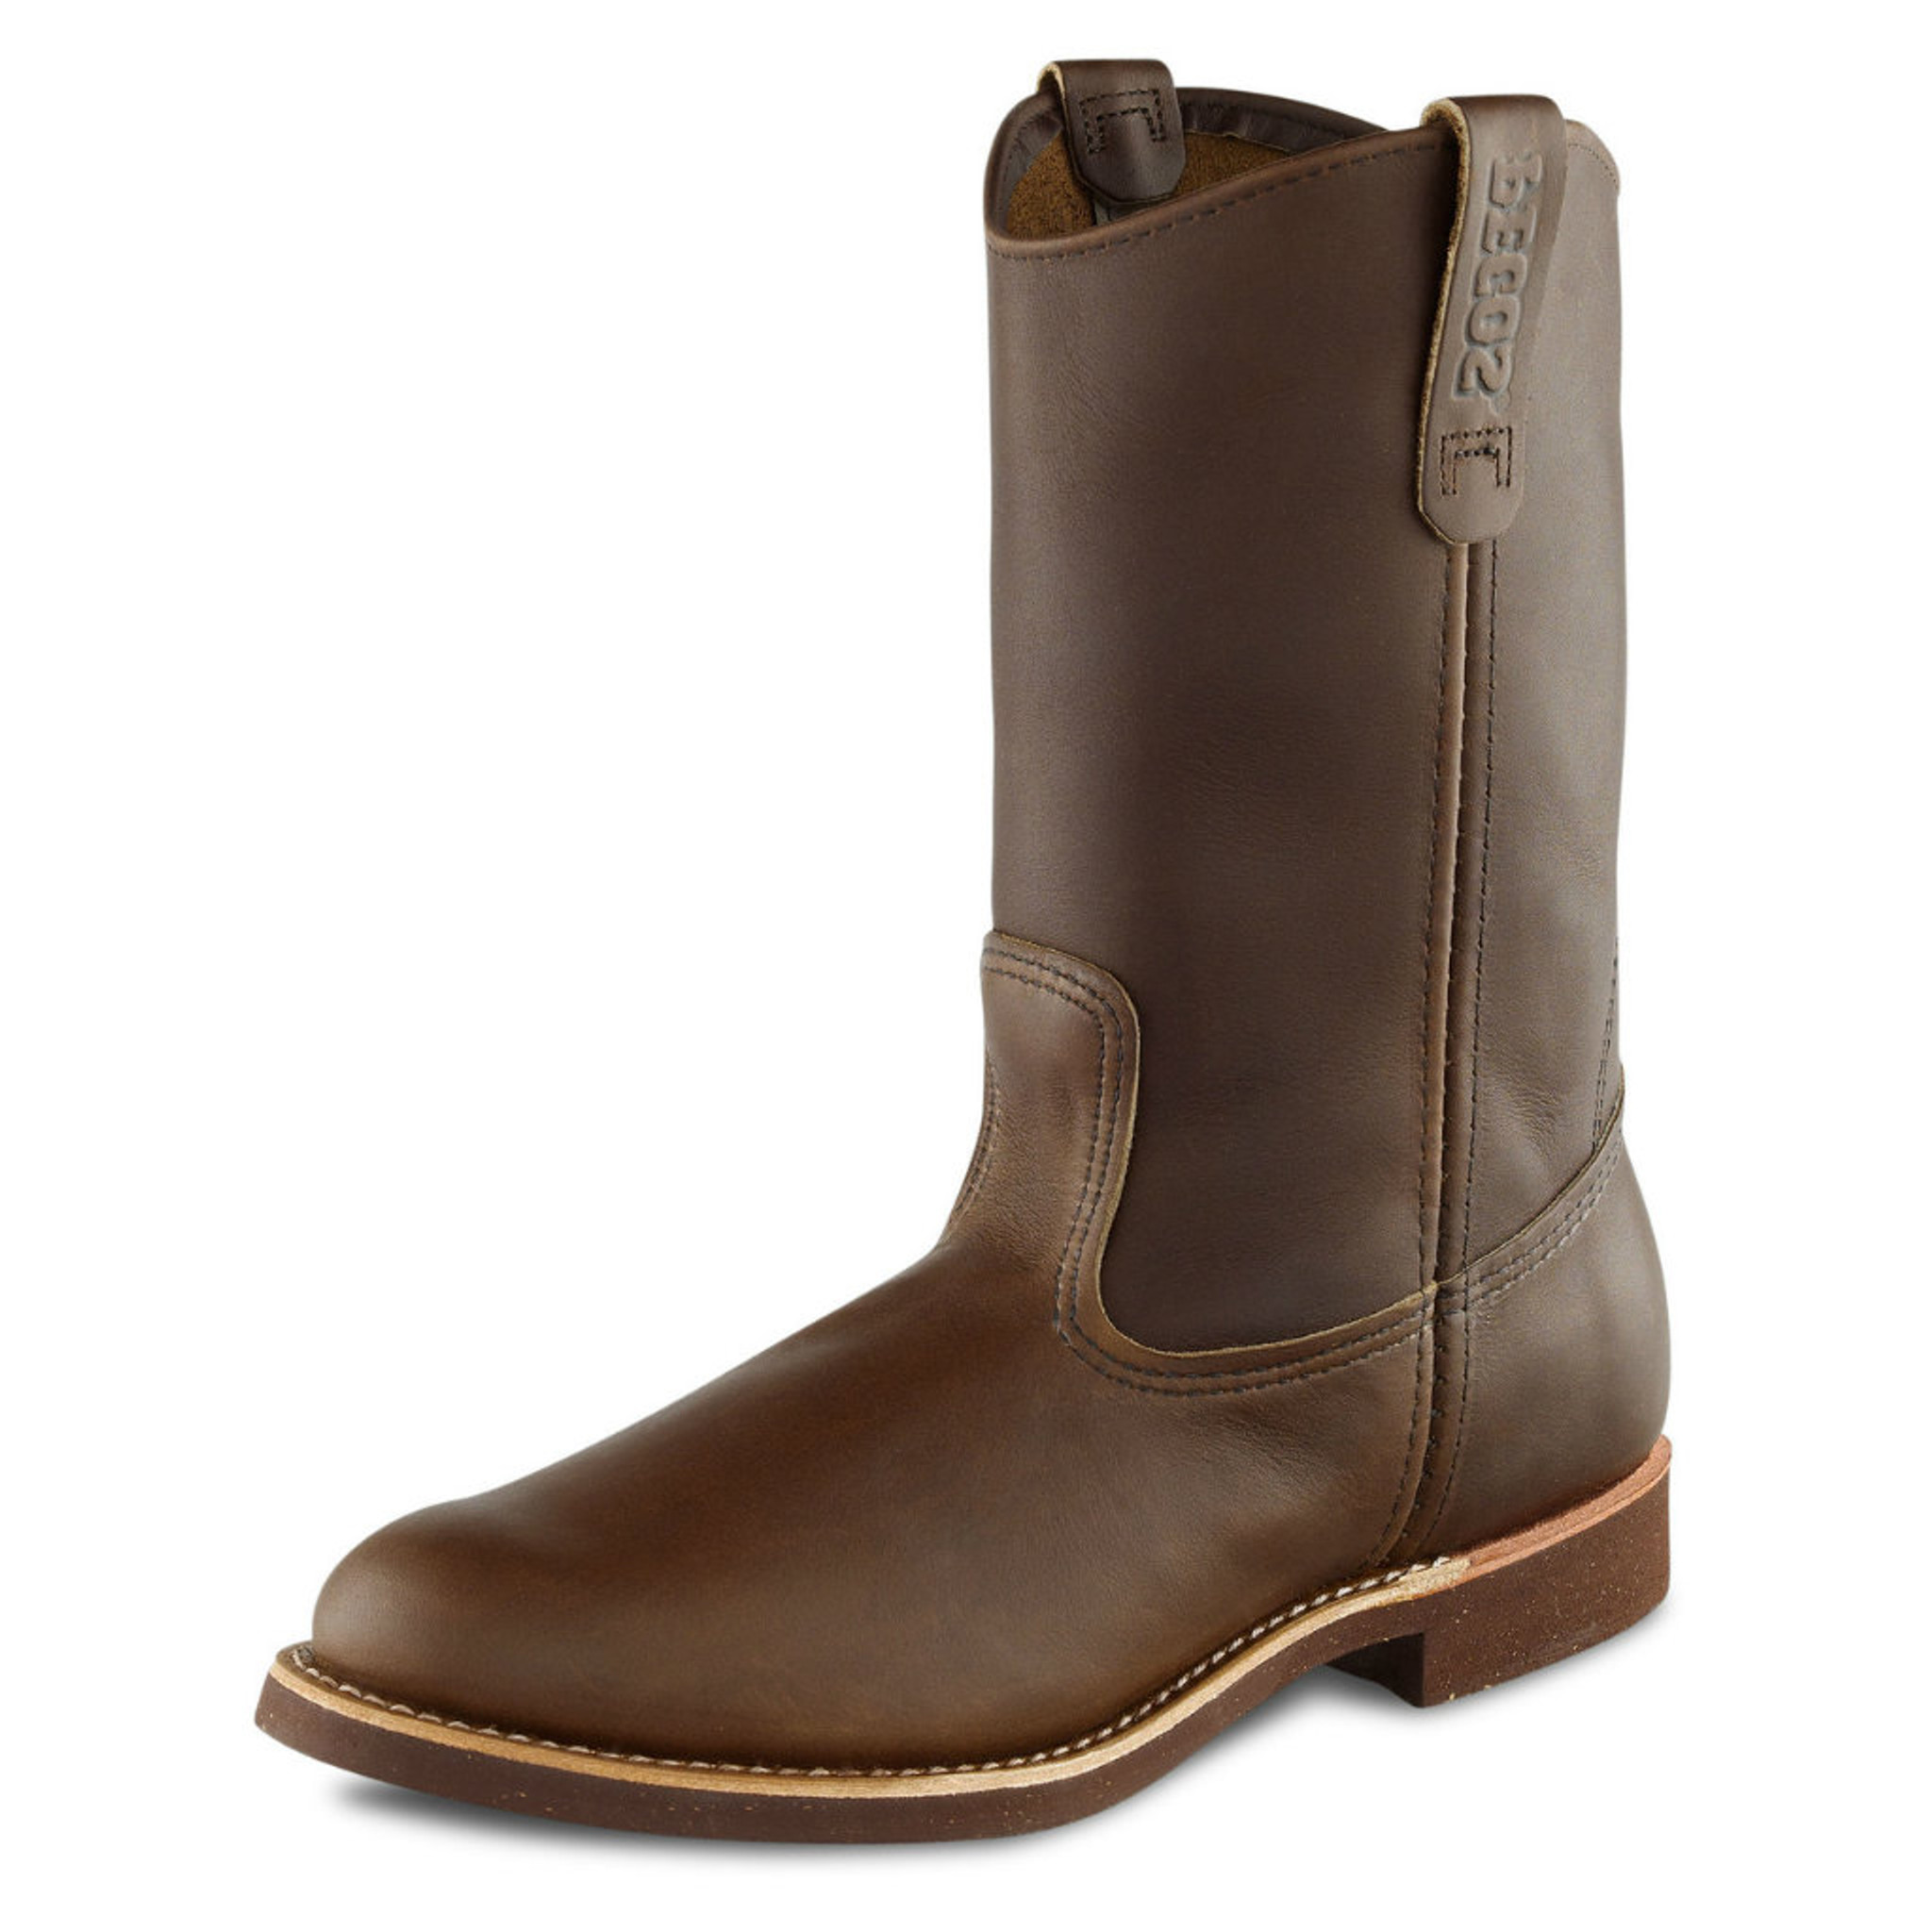 Men's Red Wing Boot, 11 Inch Pull-on